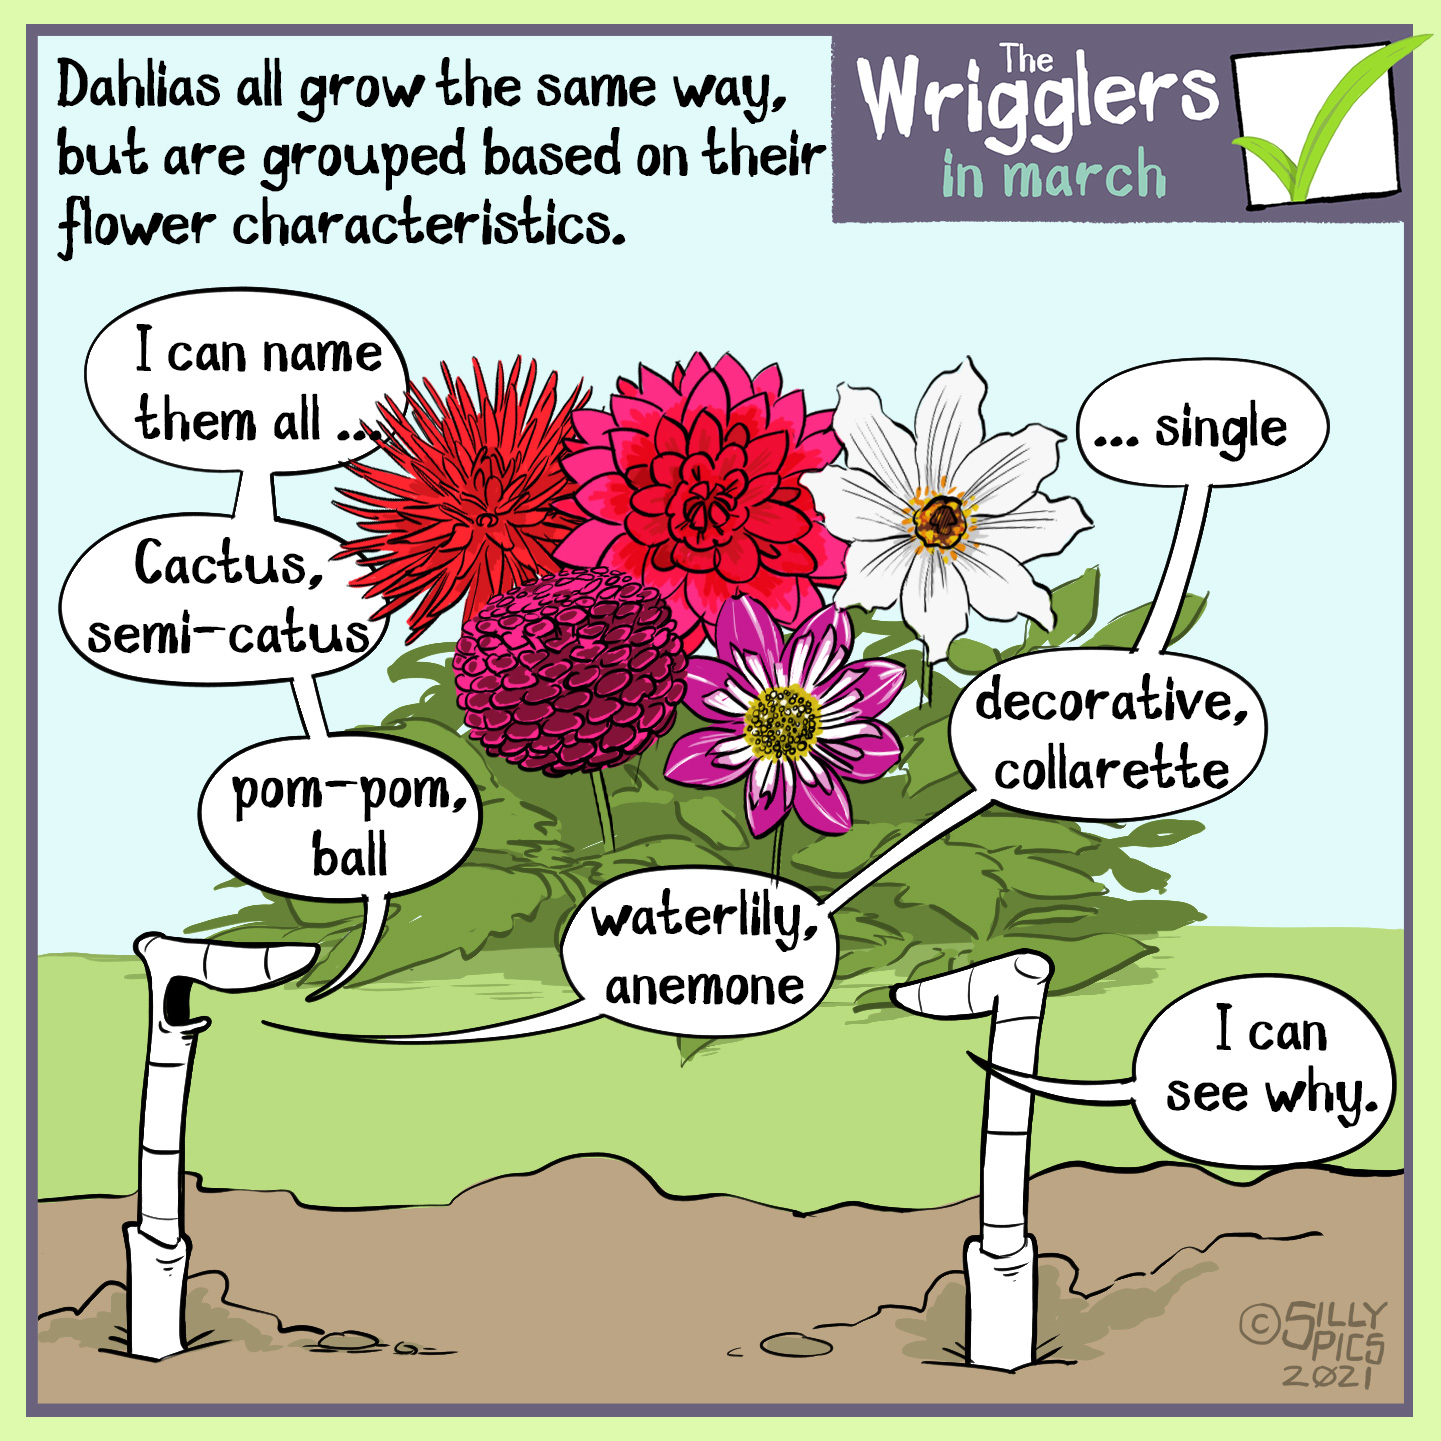 "cartoon about growing dahlias. This cartoon shows too worms looking at a group of different dahlia varieties. One worm say"" I can name every dahlia variety."" he continues, "" Cactus, semi-cactus, pom pom, ball, waterlily, anemone, decorative, colarette … single,"" The other warm, ""I can see why"""